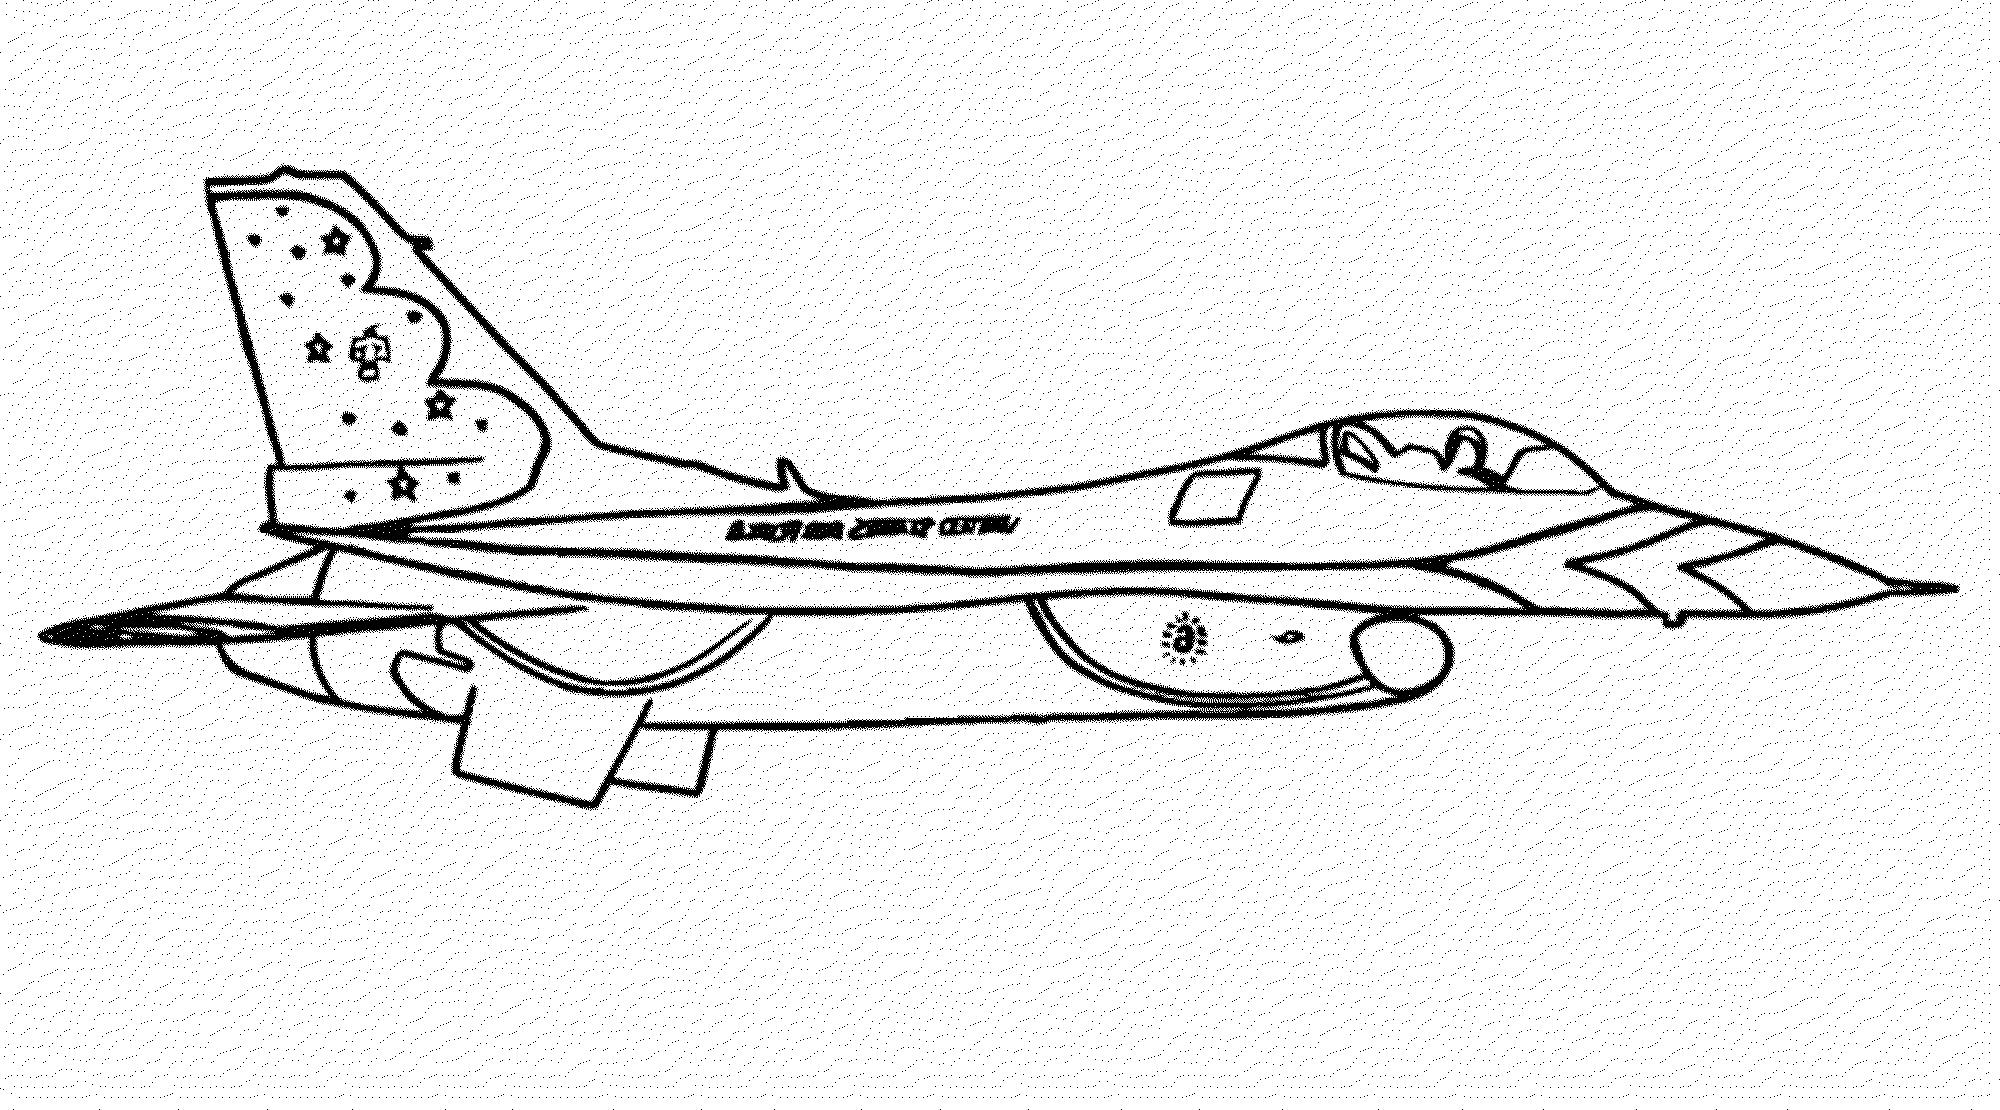 airplane pictures to colour airplanes for kids drawing at getdrawings free download to pictures airplane colour